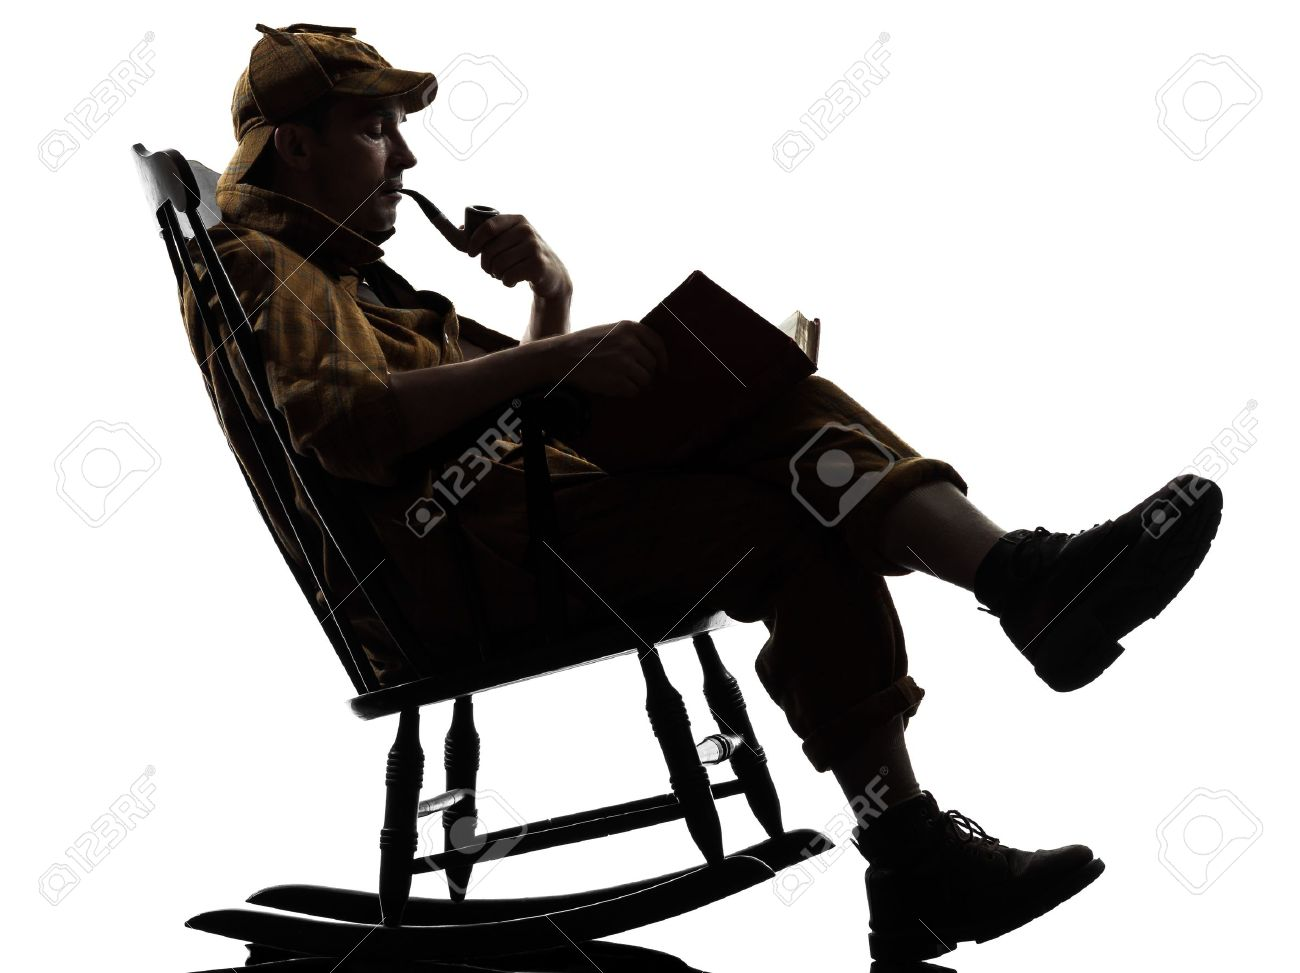 Attrayant Sherlock Holmes Reading Silhouette Sitting In Rocking Chair In Studio On  White Background Stock Photo